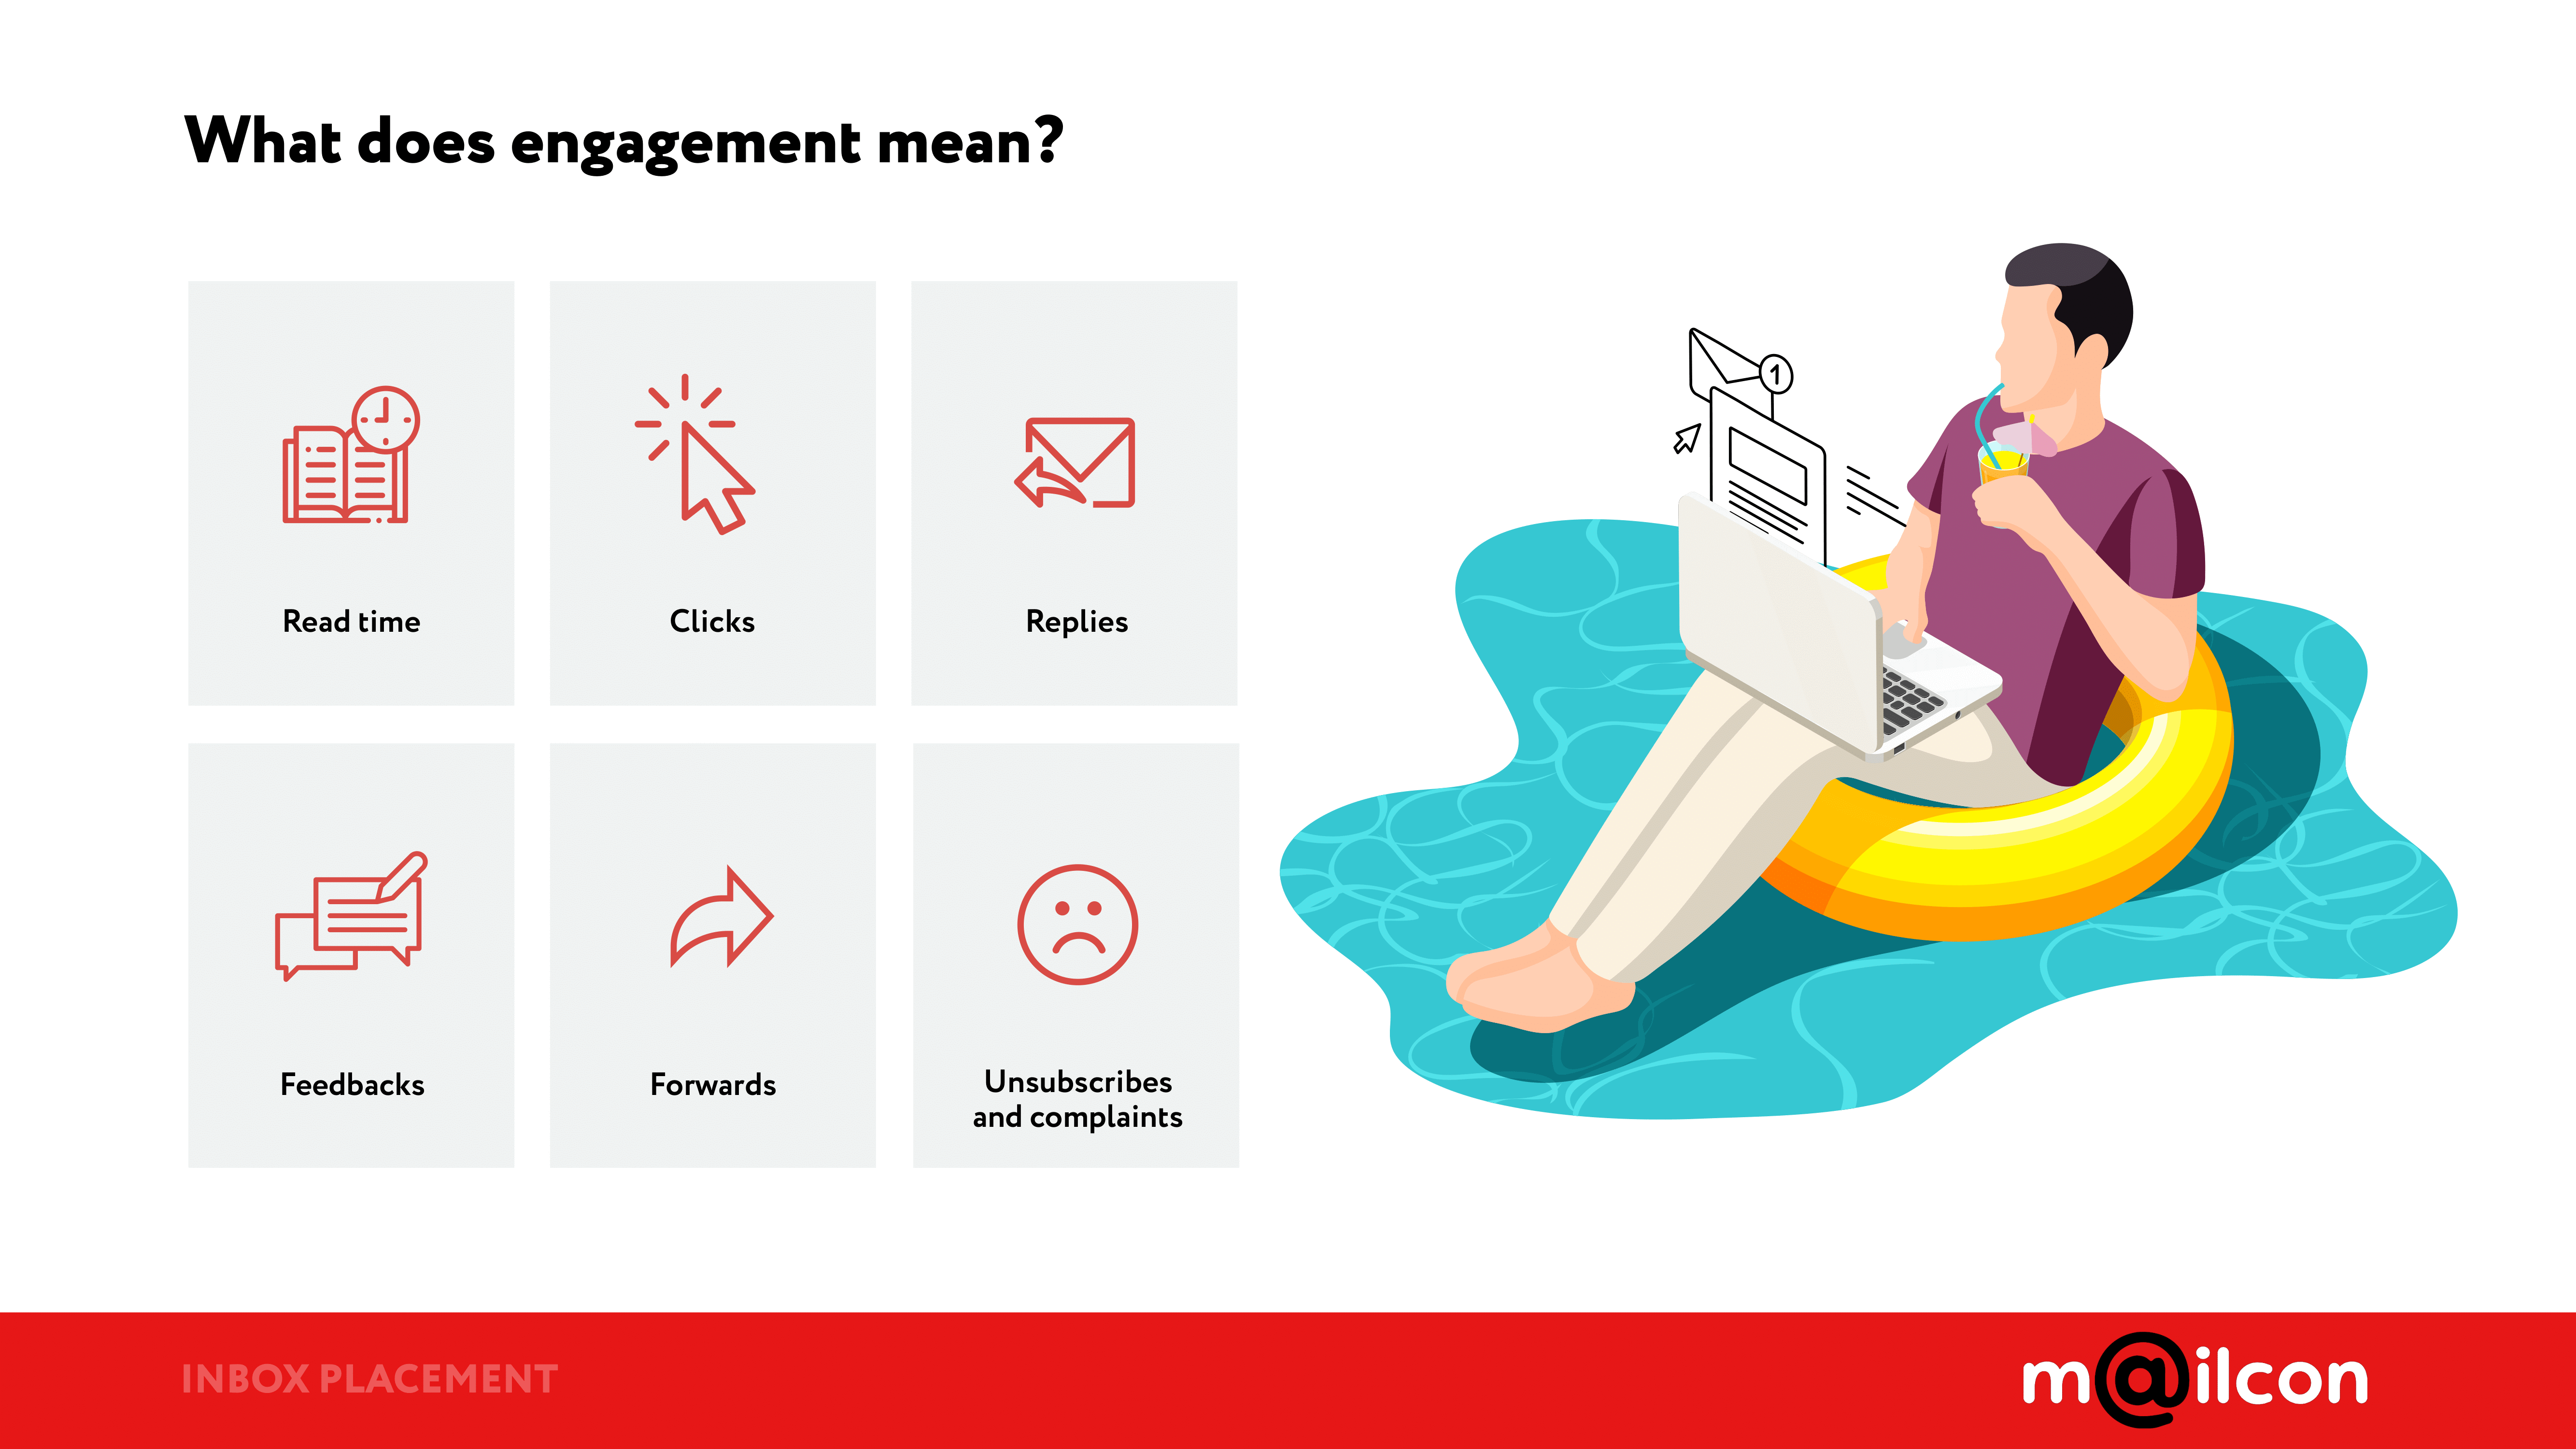 What does engagement mean